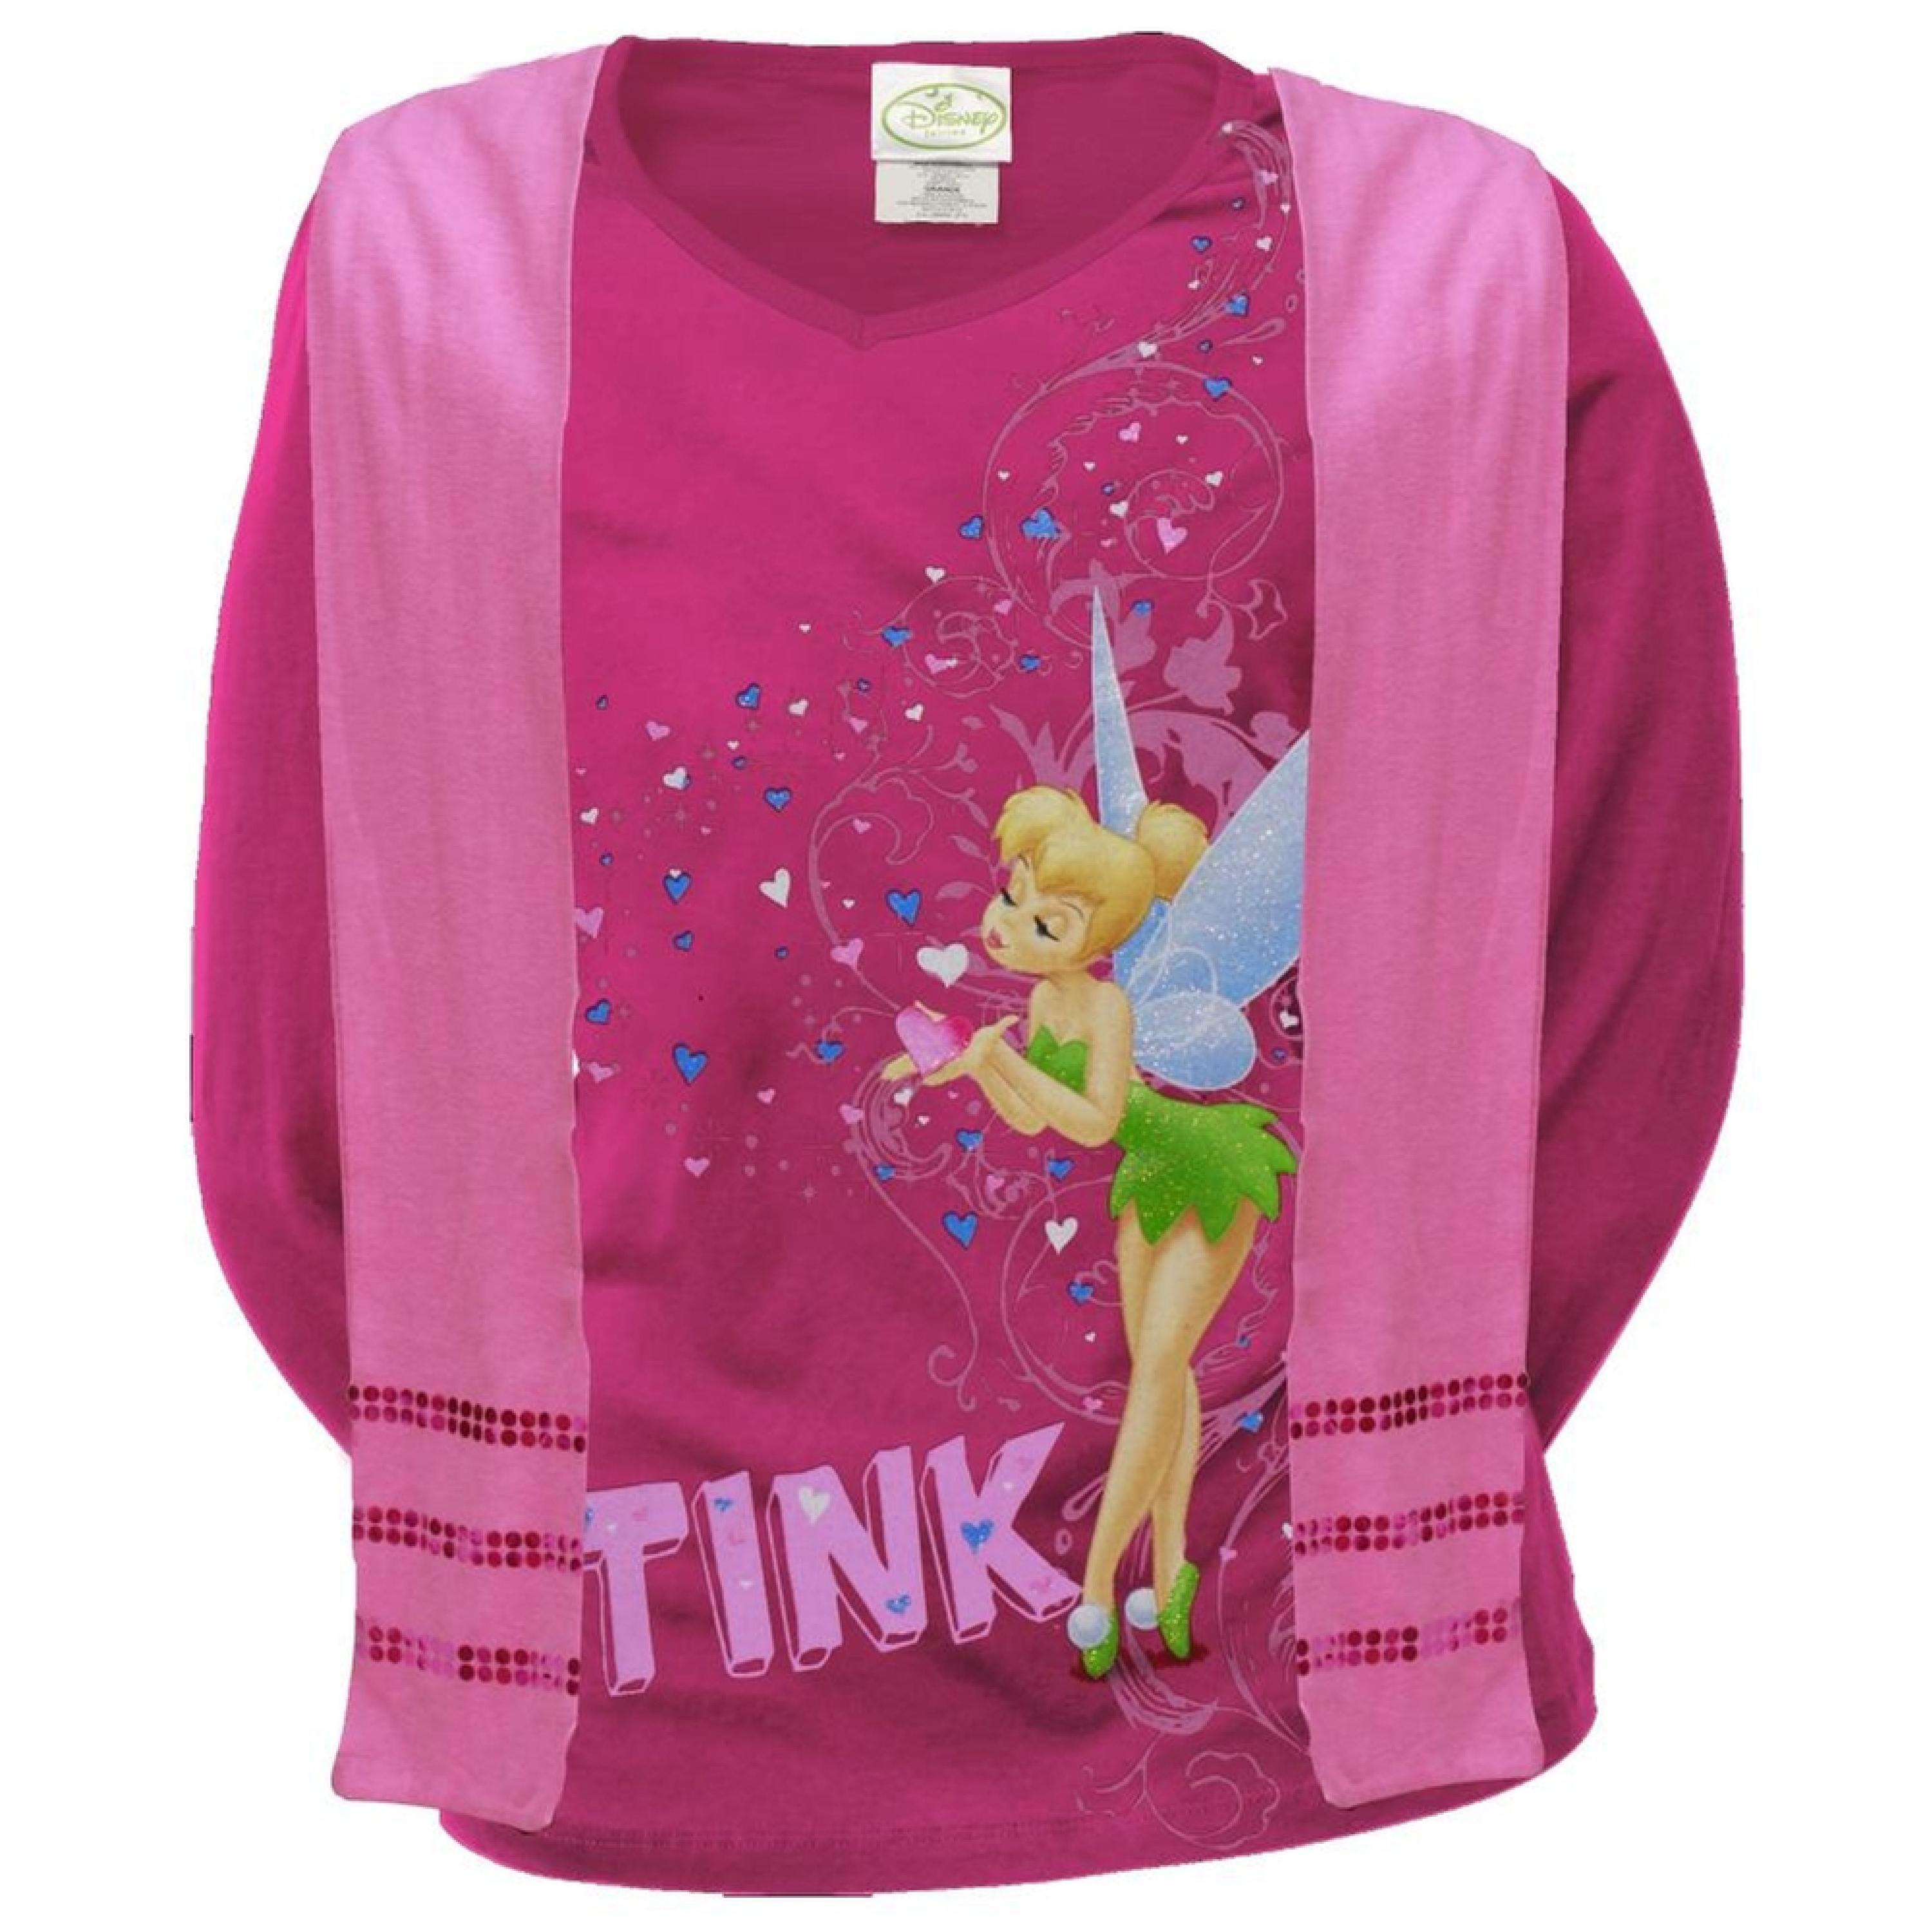 Tinkerbell - Tink Love Girls Youth Long Sleeve T-Shirt w/ Scarf